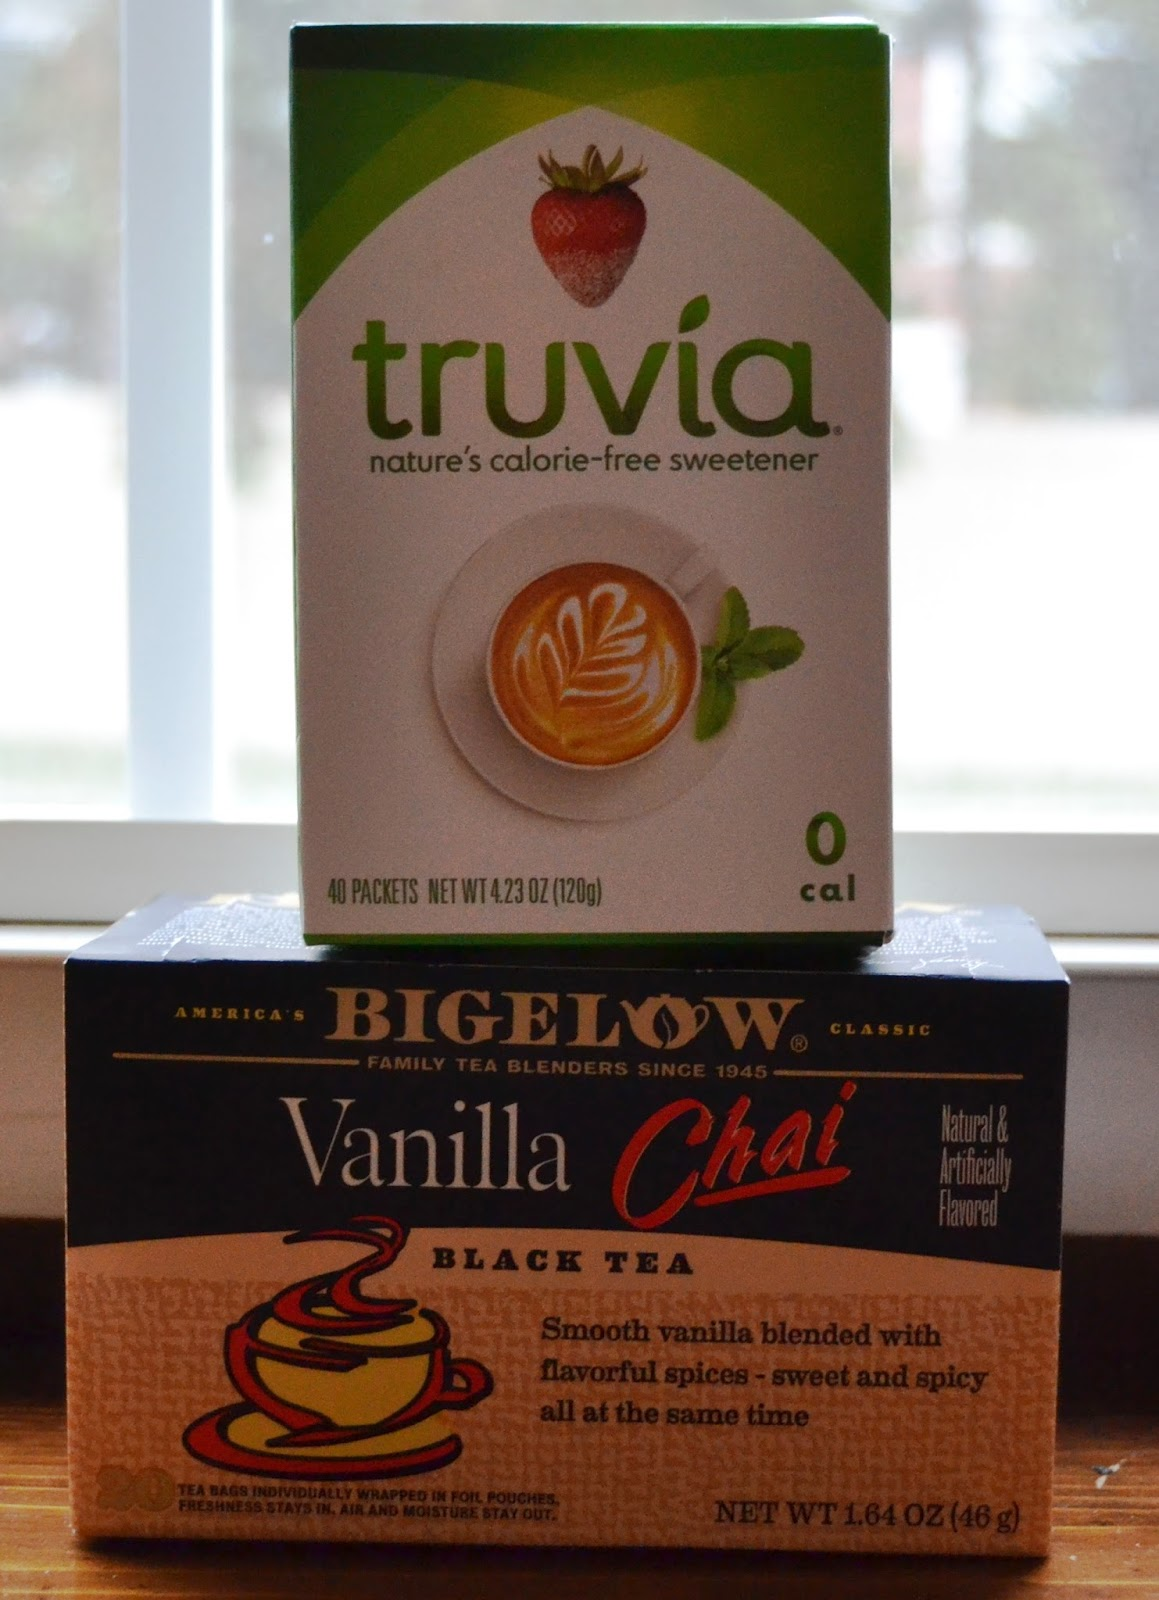 Bigelow Tea and Truvia